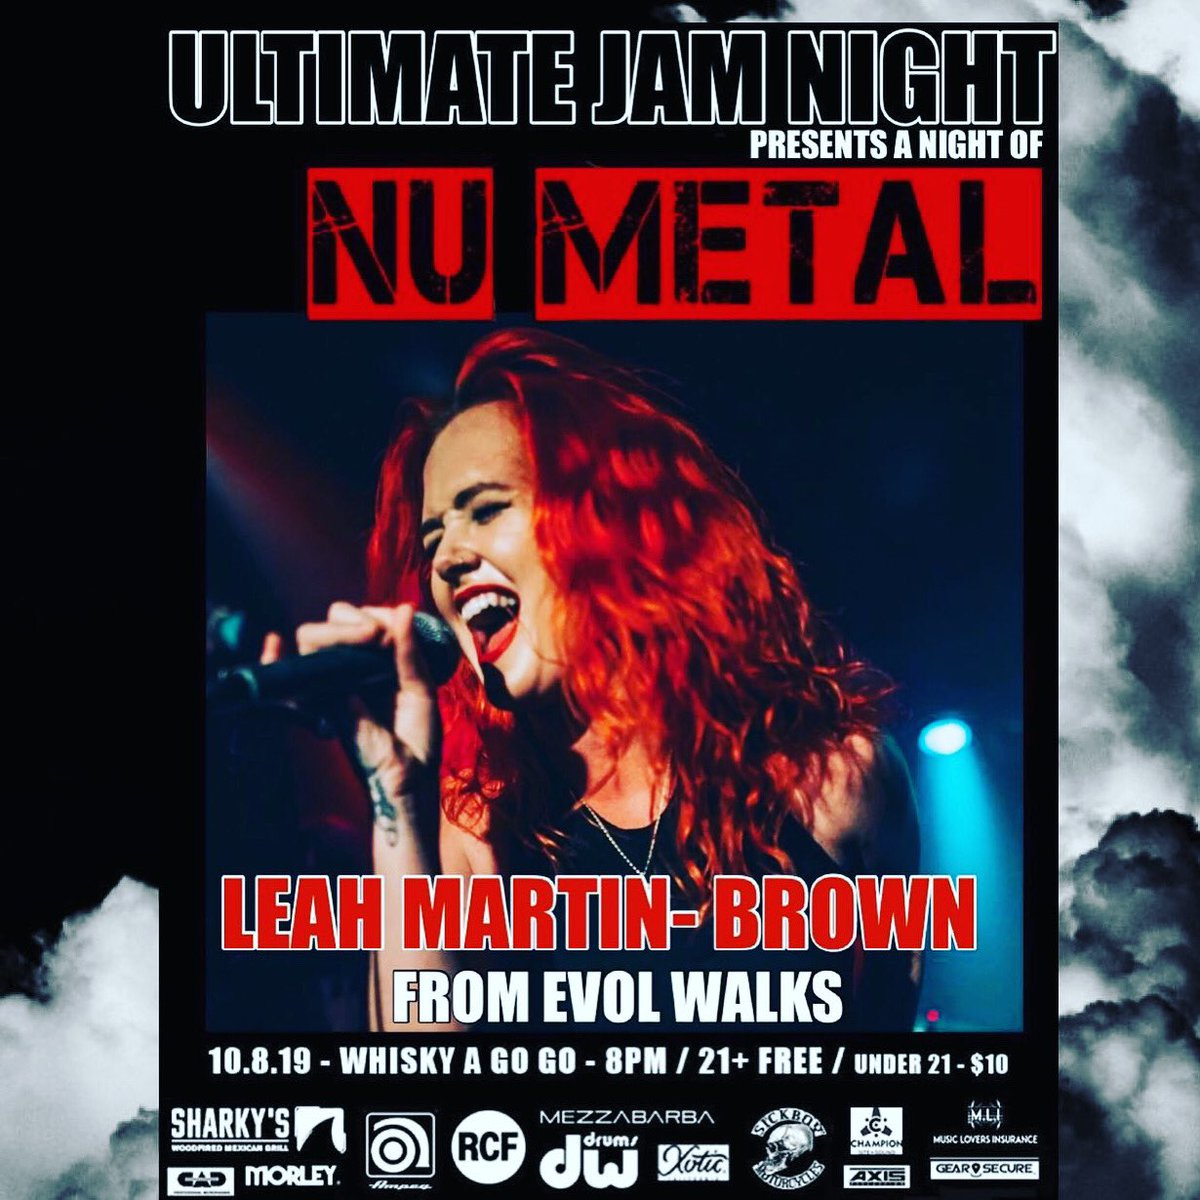 THIS TUESDAY OCTOBER 8th Eastern time! ULTIMATE JAM NIGHT & RYOULIVE present a night of NU METAL... featuring songs by KORN, SLIPKNOT, DISTURBED and more https://t.co/SIU9108uG4 #livebroadcast #ultimatejamnight #whiskyagogo #hollywood #korn #slipnot #disturbed https://t.co/d4zbXNu1Jj